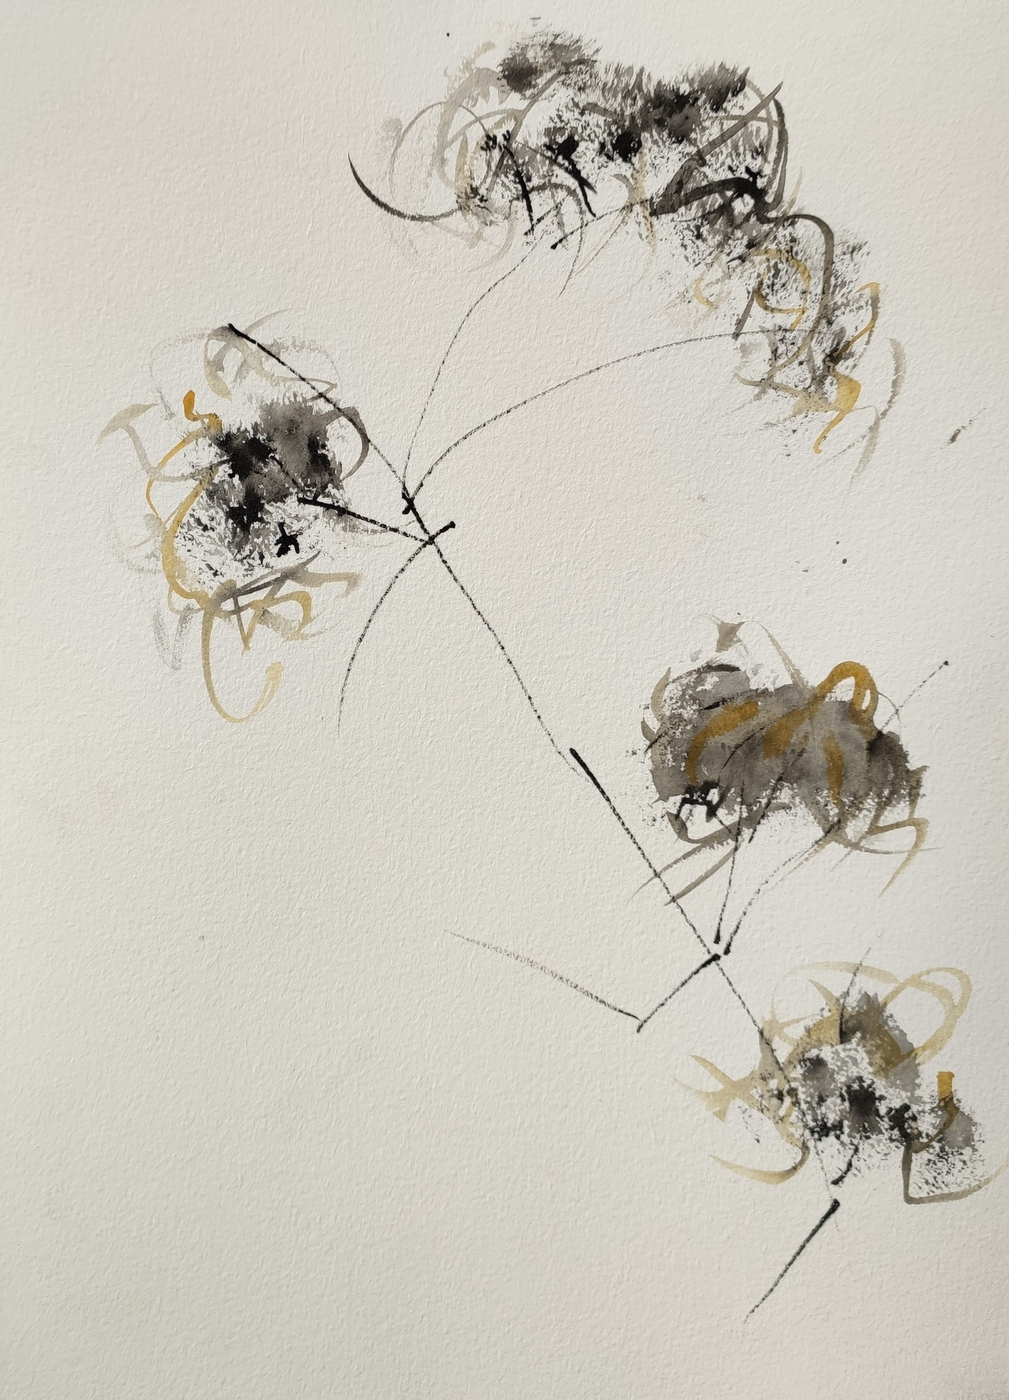 Wilder Wein 2020 Ink and Watercolour on Paper © Christiane Weismüller